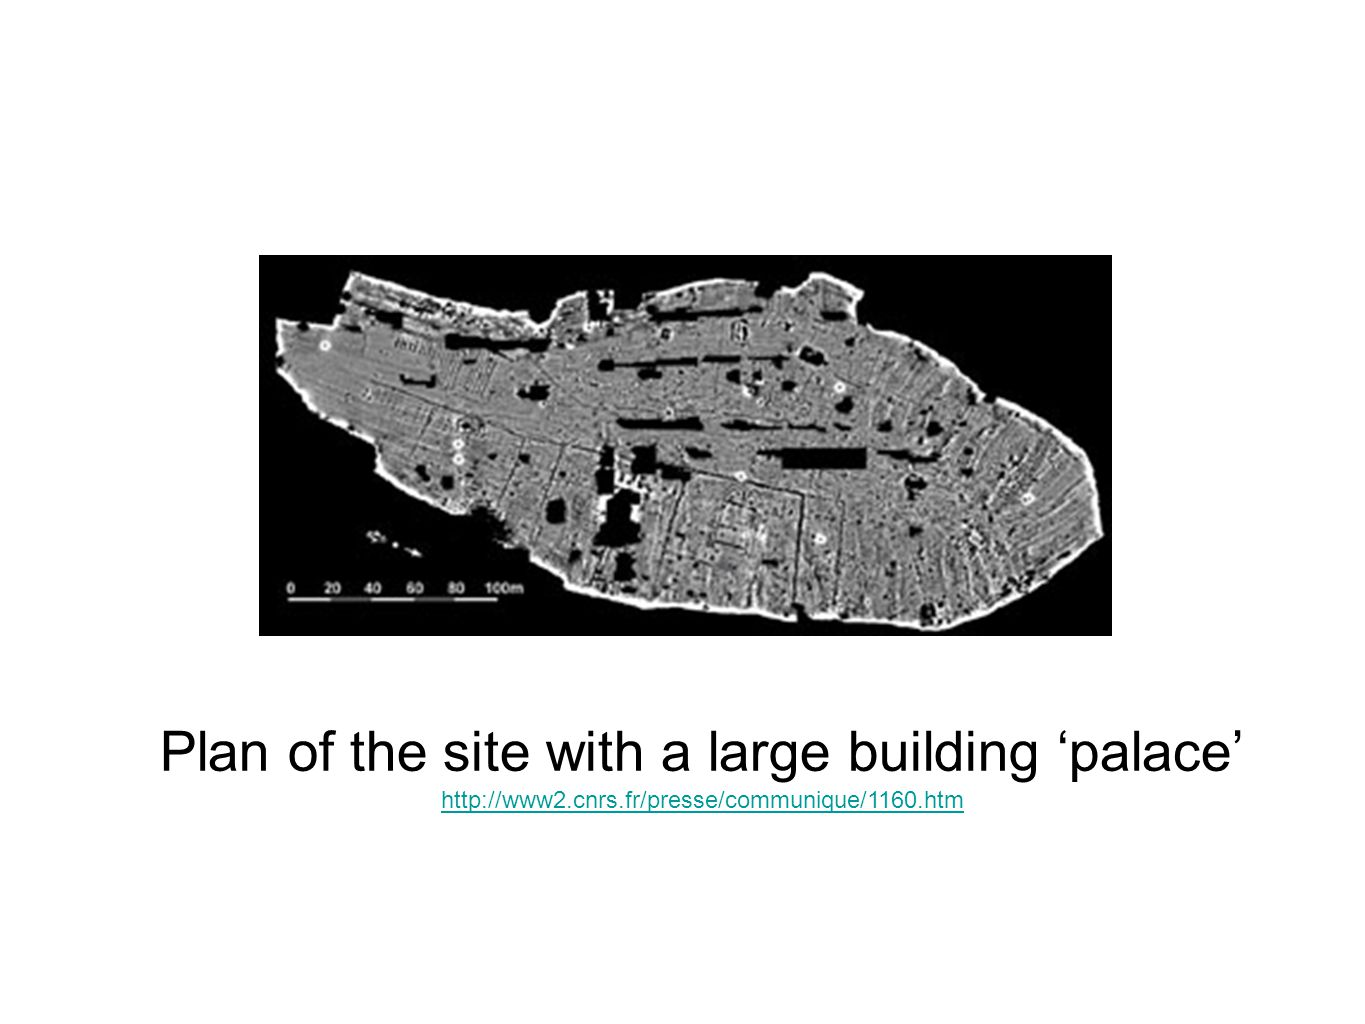 Plan of the site with a large building 'palace'